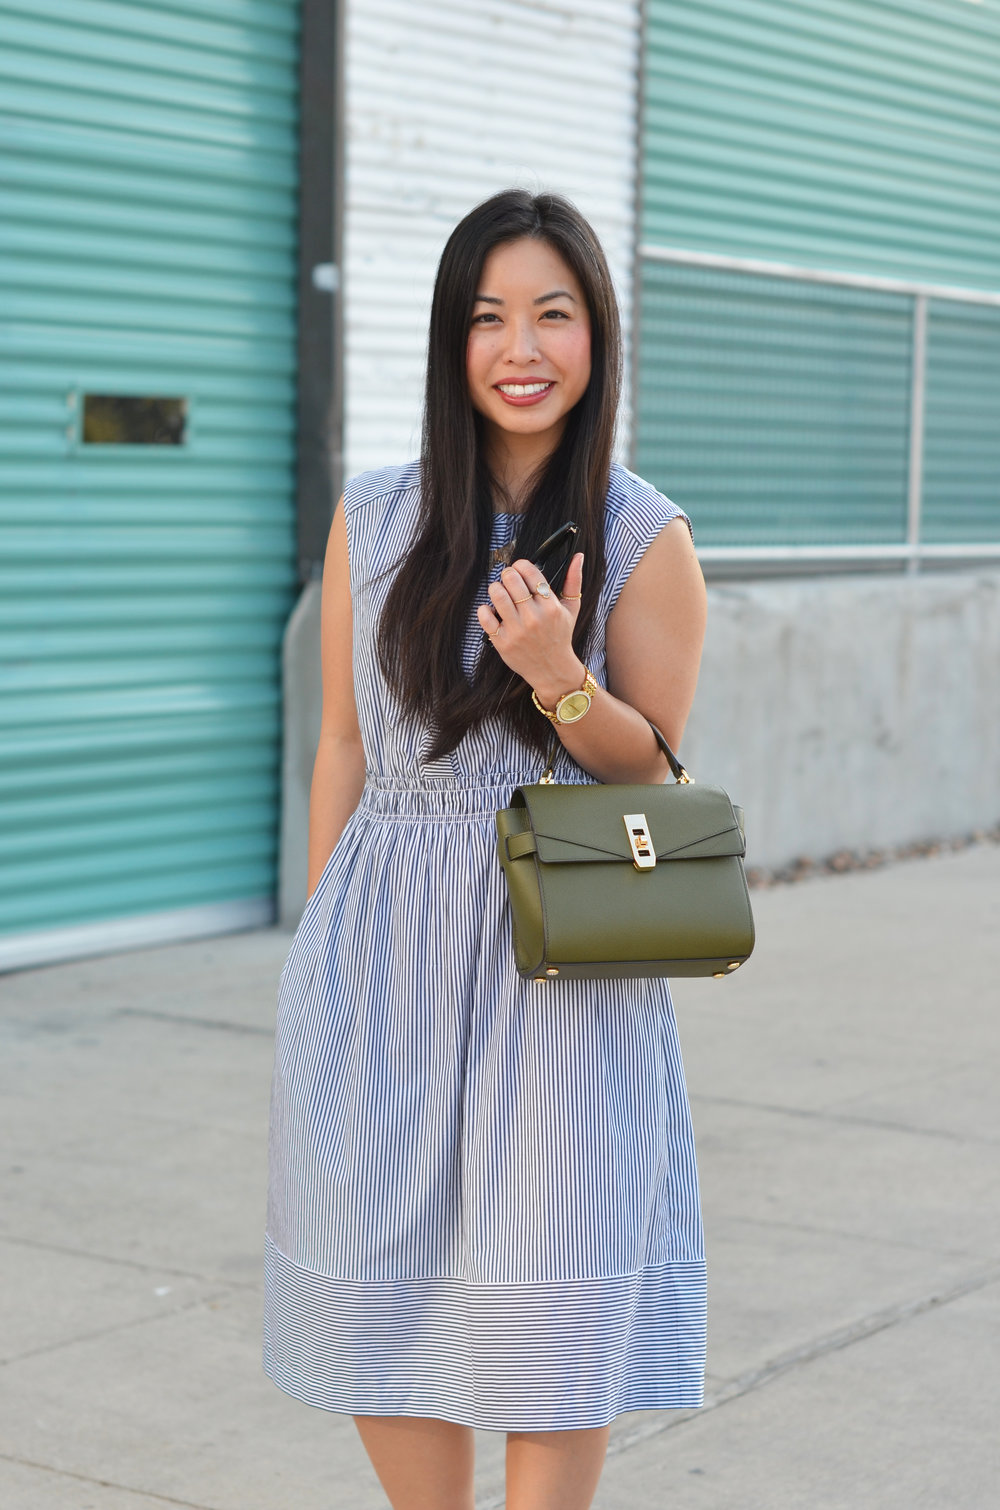 the-striped-dress-olive-handbag-jannadoan.com